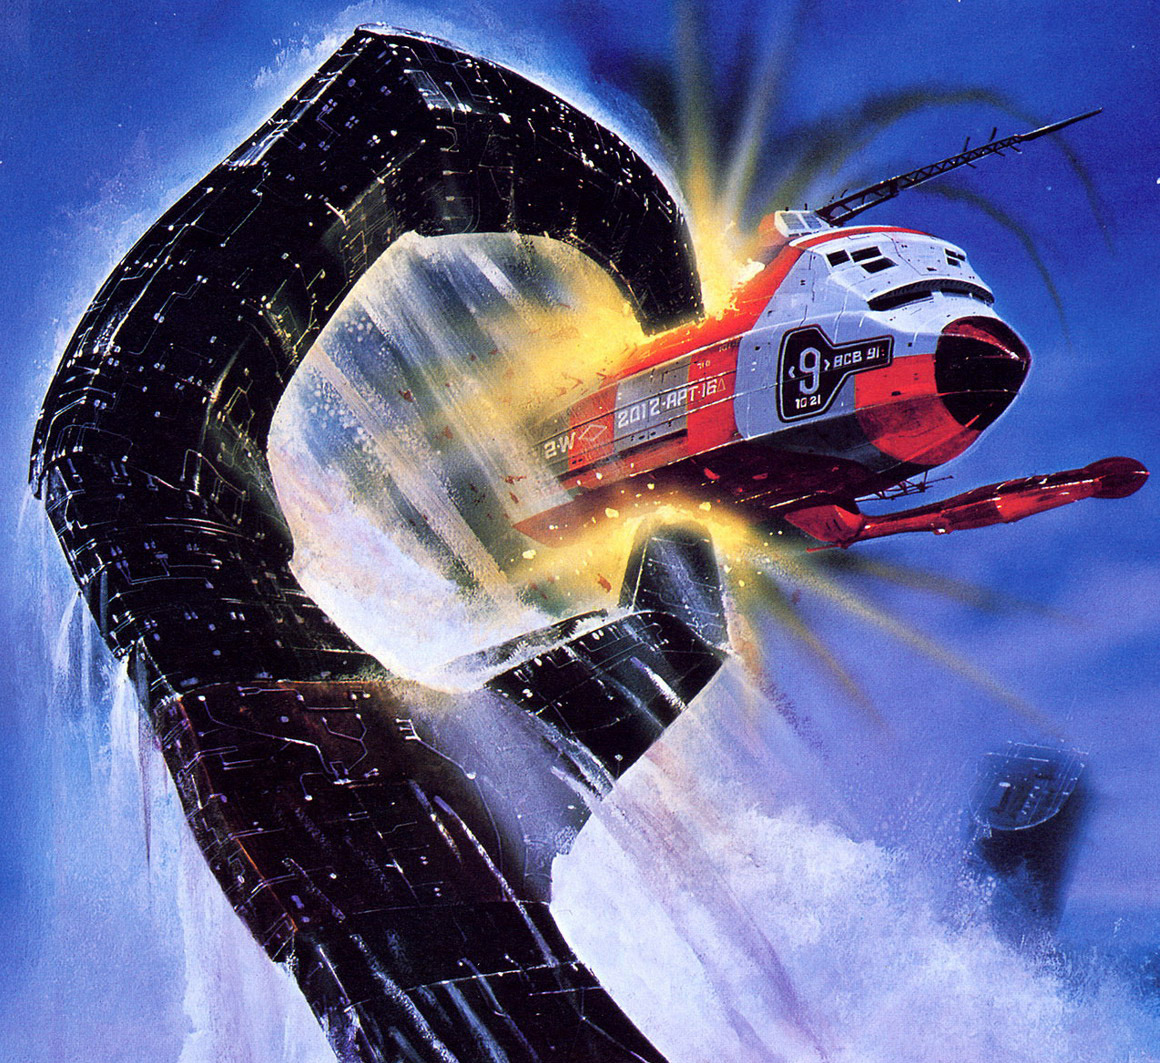 70s Sci Fi Art Chris Foss: 70s Sci-Fi Art: Chris Foss